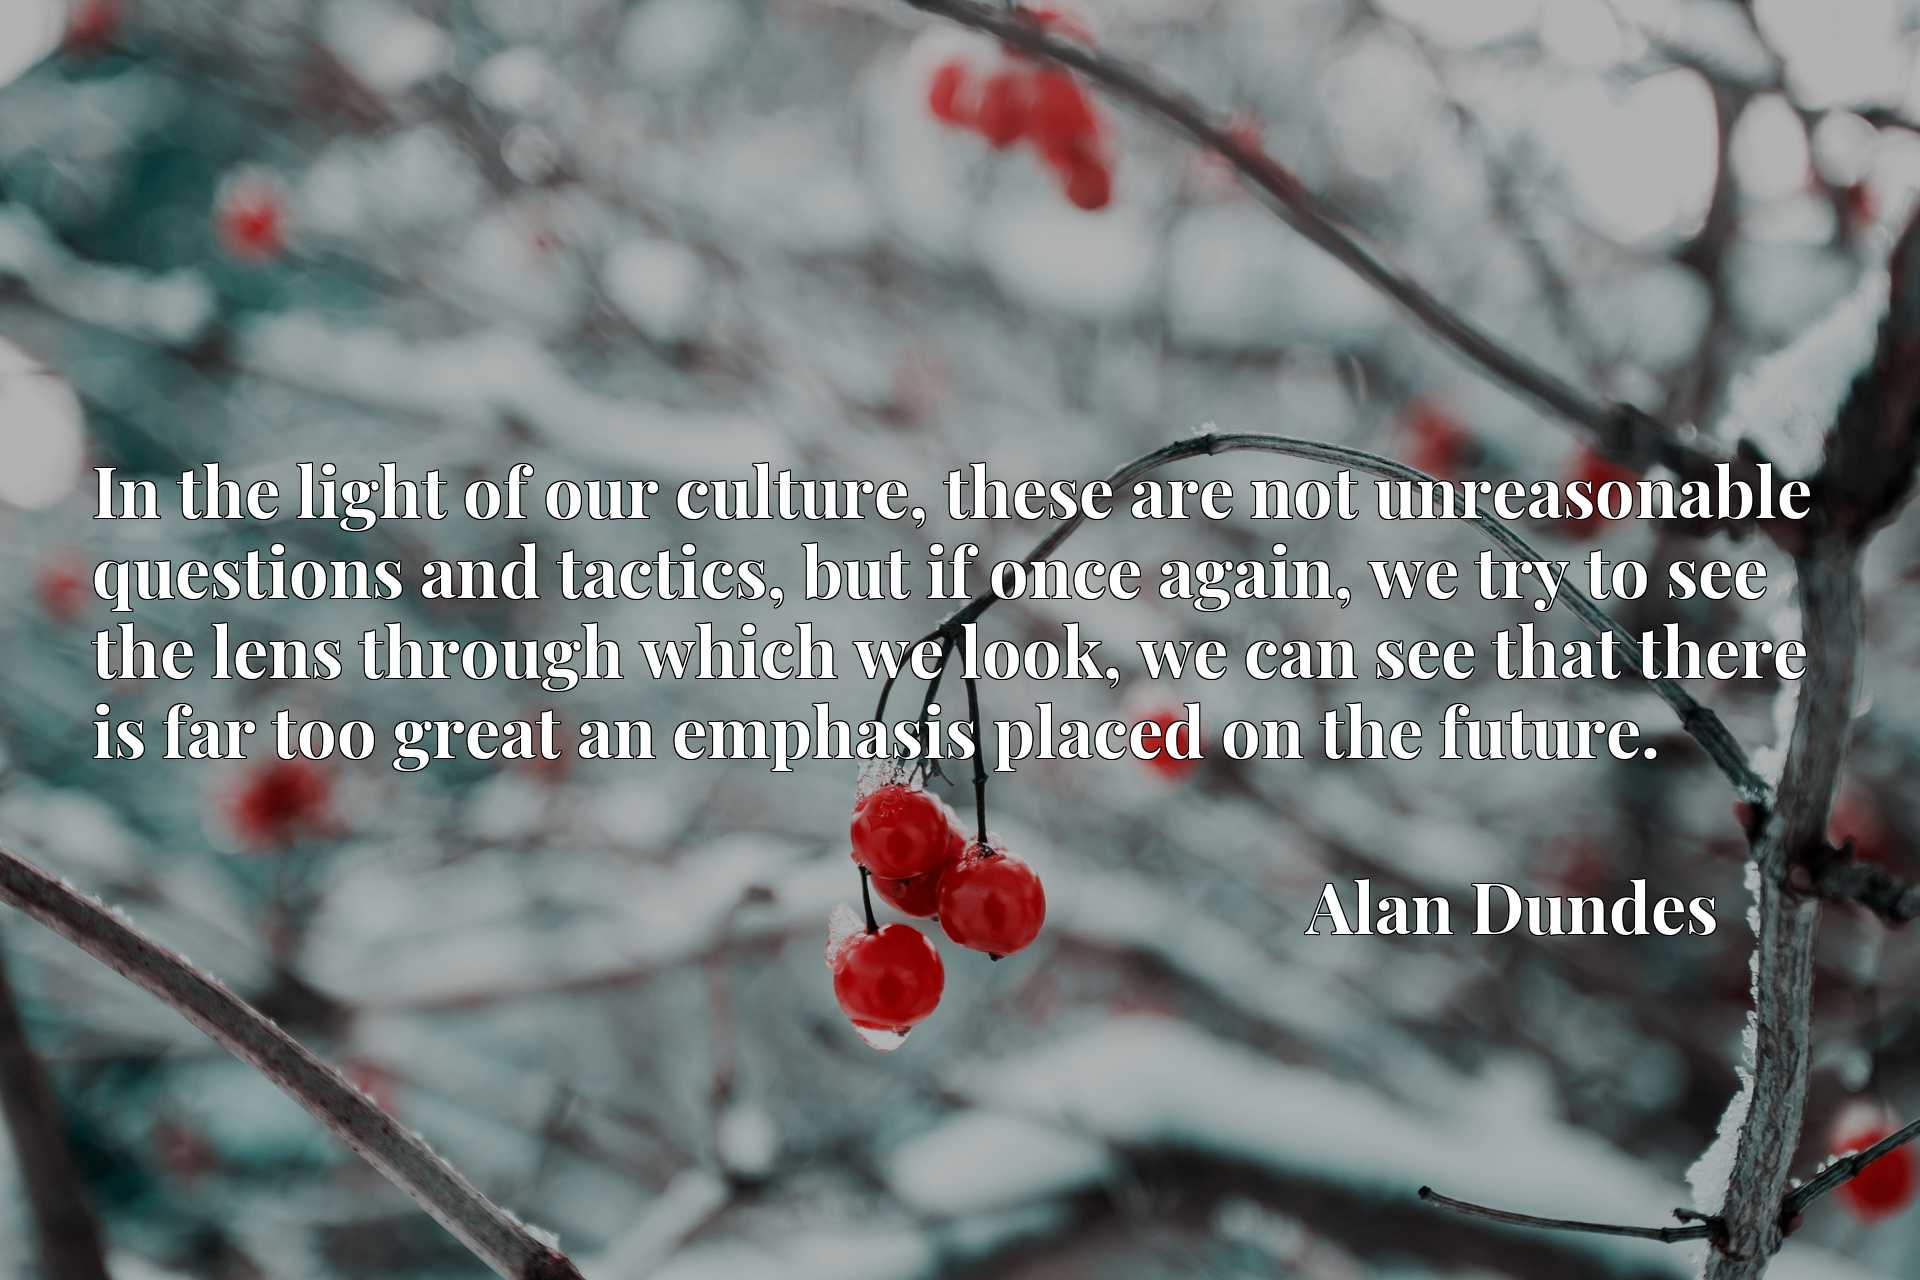 In the light of our culture, these are not unreasonable questions and tactics, but if once again, we try to see the lens through which we look, we can see that there is far too great an emphasis placed on the future.